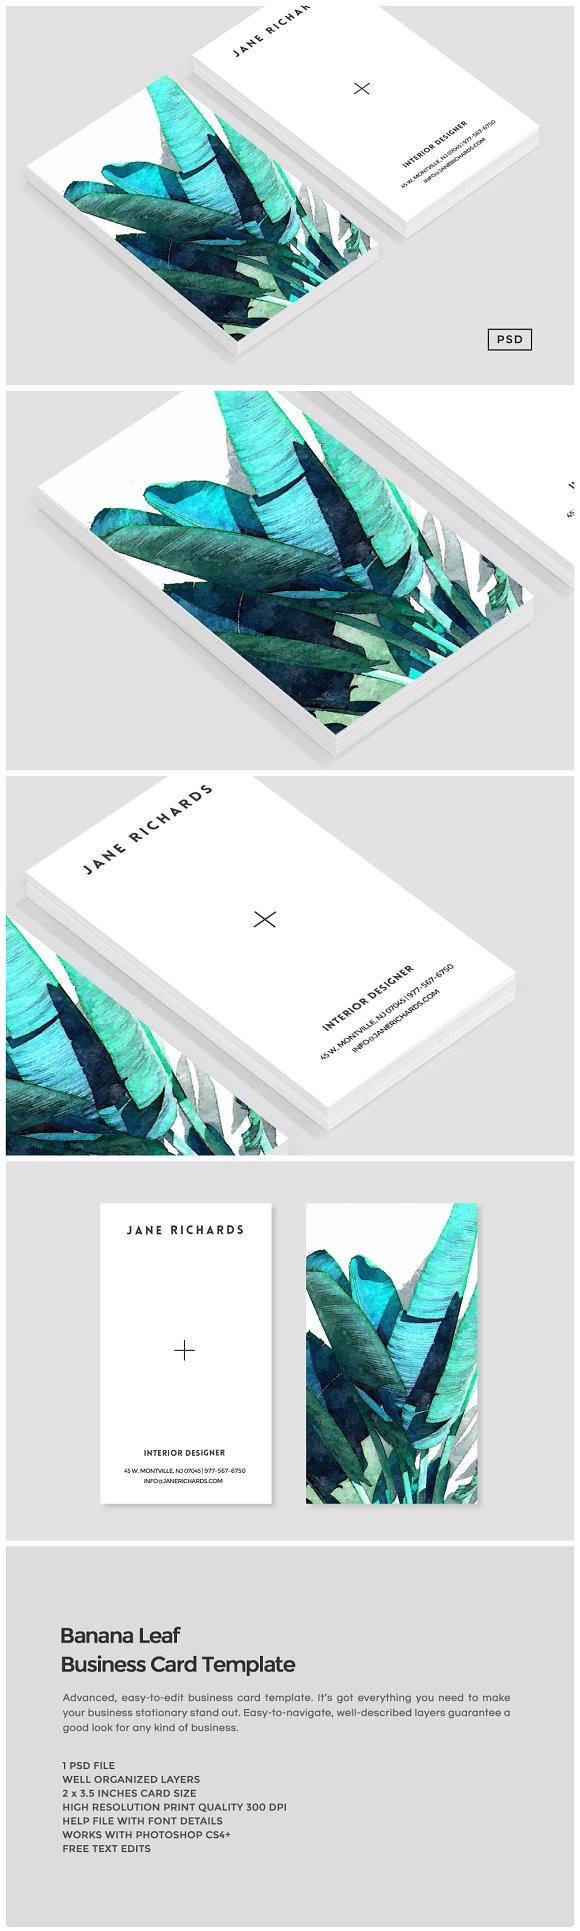 Banana leaf business card template business card templates banana leaf business card template business card templates creative market cheaphphosting Image collections